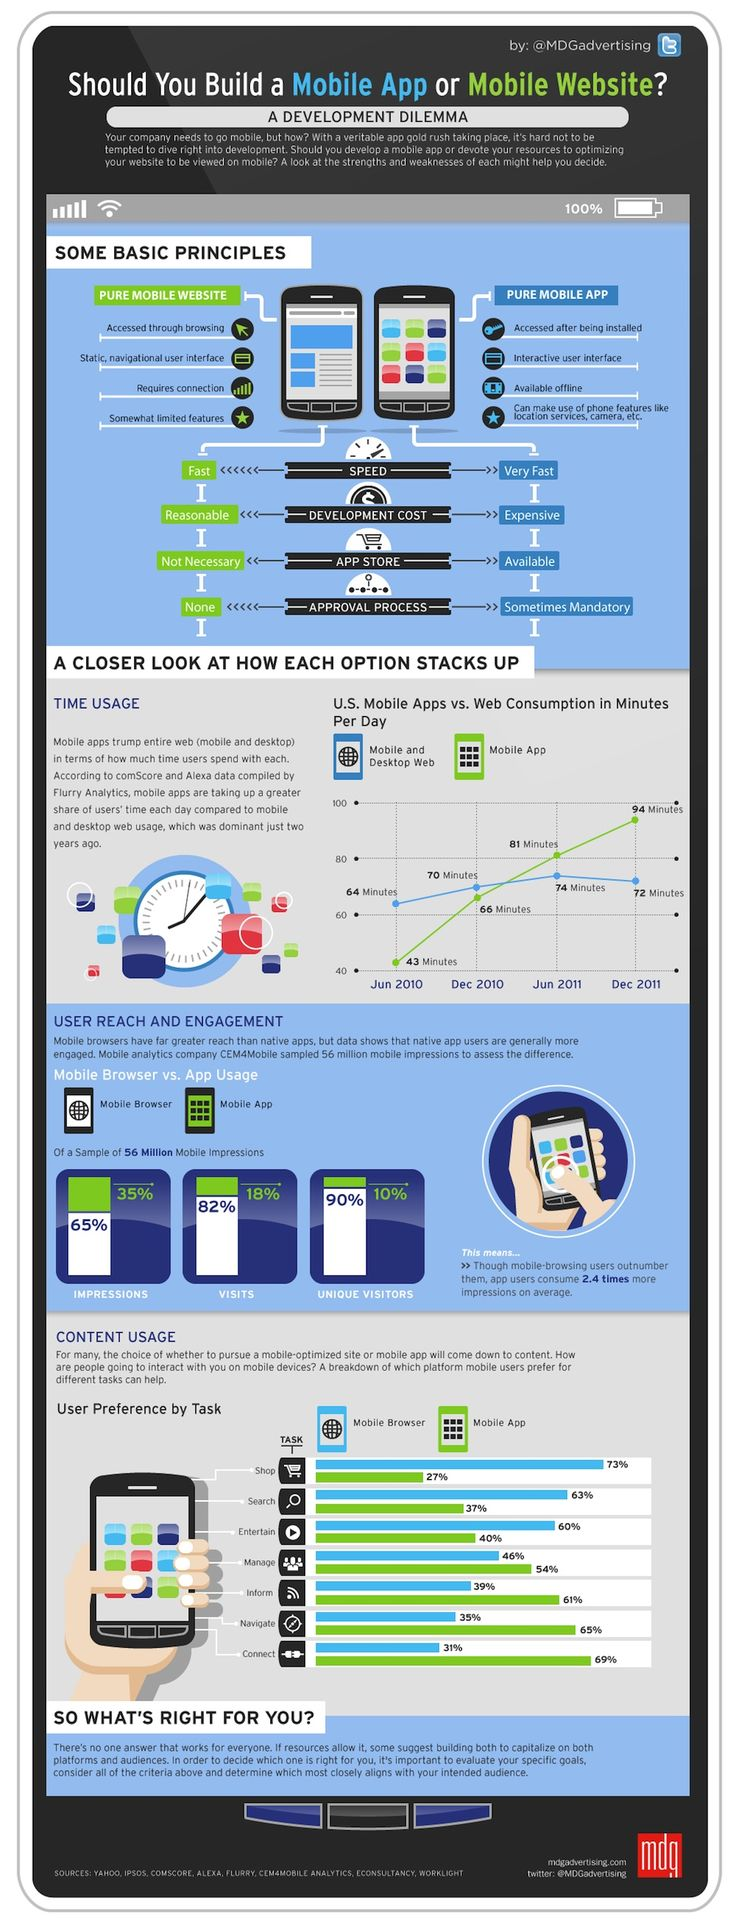 Very interesting infographic about #MobileApps vs. #MobileWebSites with great data to help mobile marketers make a decision.  One of the most informative infographic we've seen in a while.